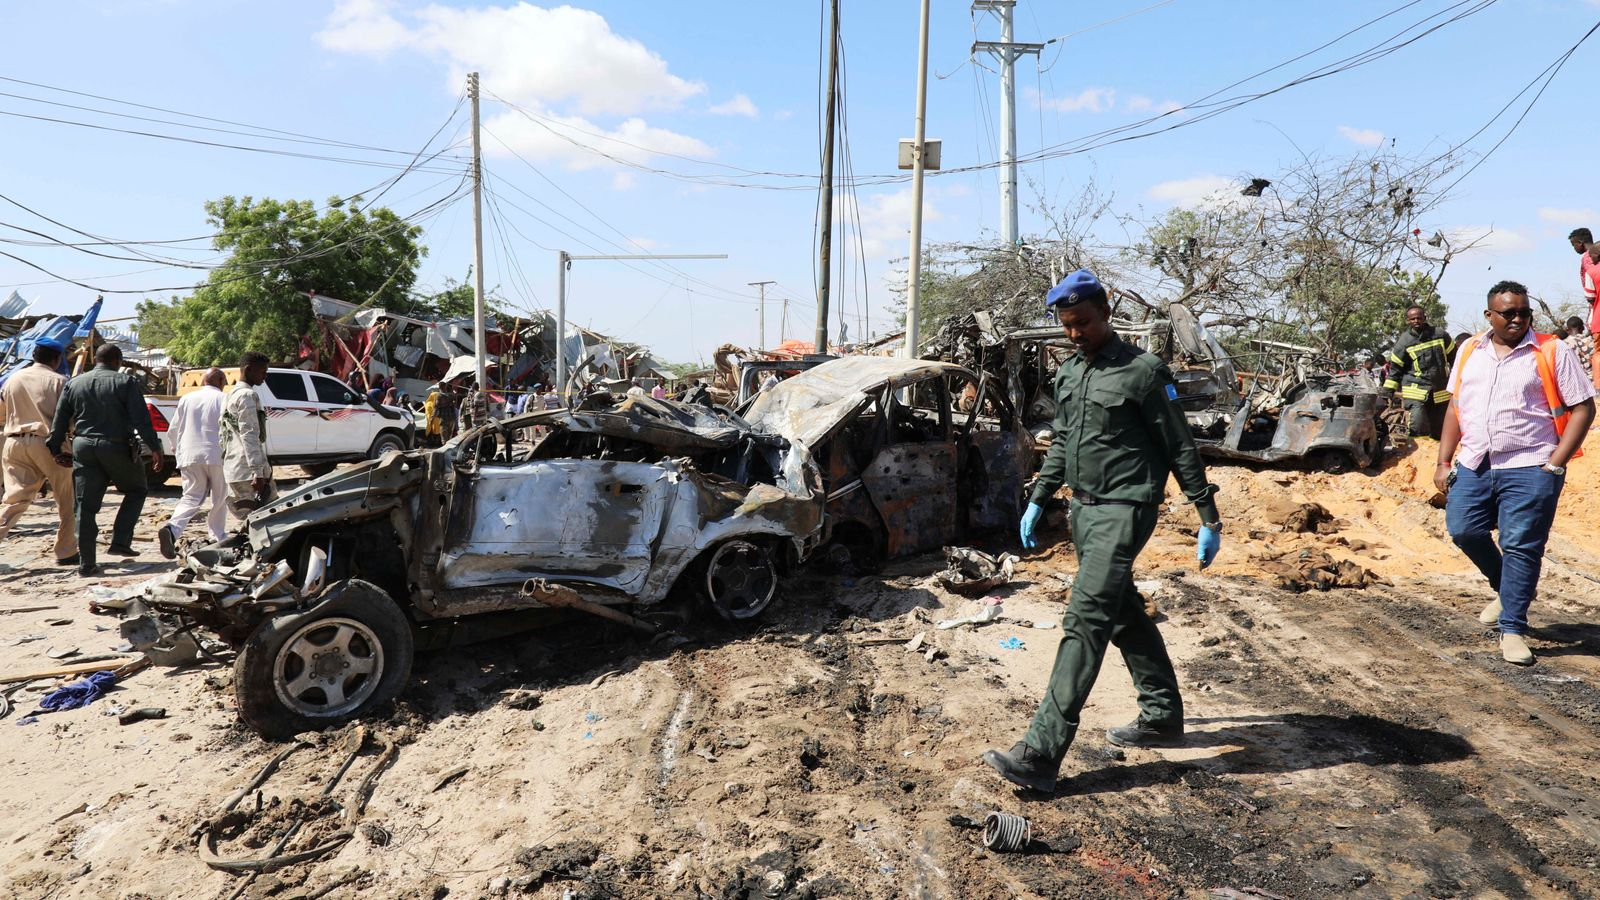 At least 73 dead in Somalia checkpoint car bombing - EpicNews